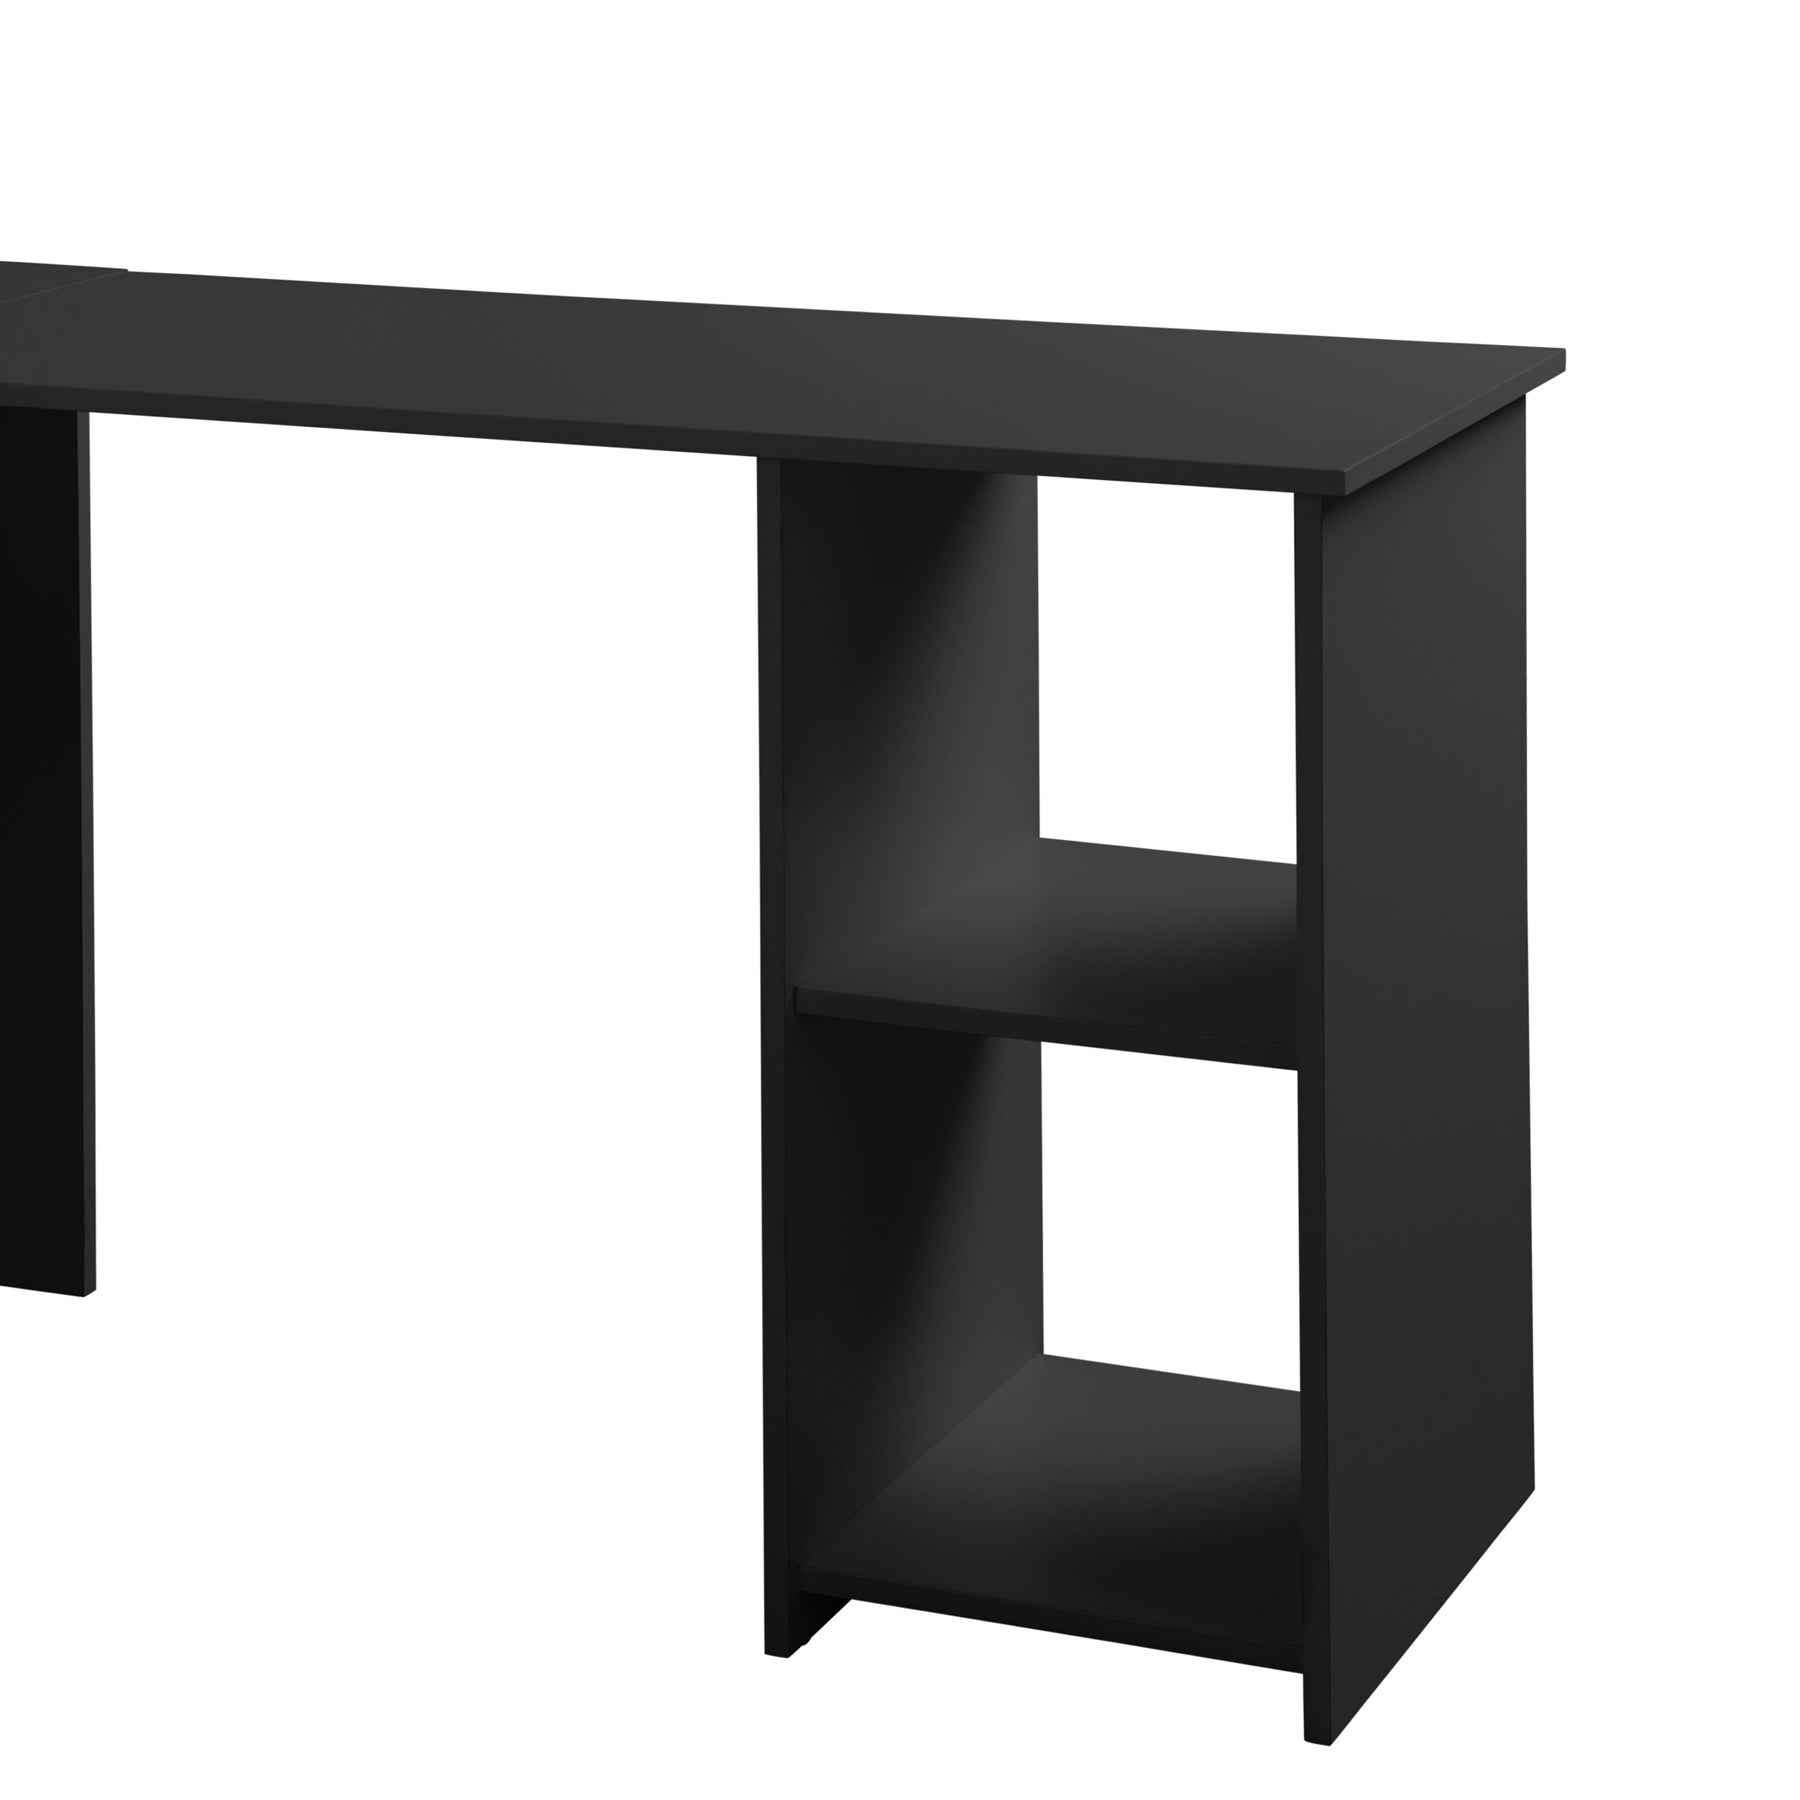 Attrayant Shop Fineboard L Shaped Office Corner Desk 2 Side Shelves   Free Shipping  Today   Overstock.com   18778846